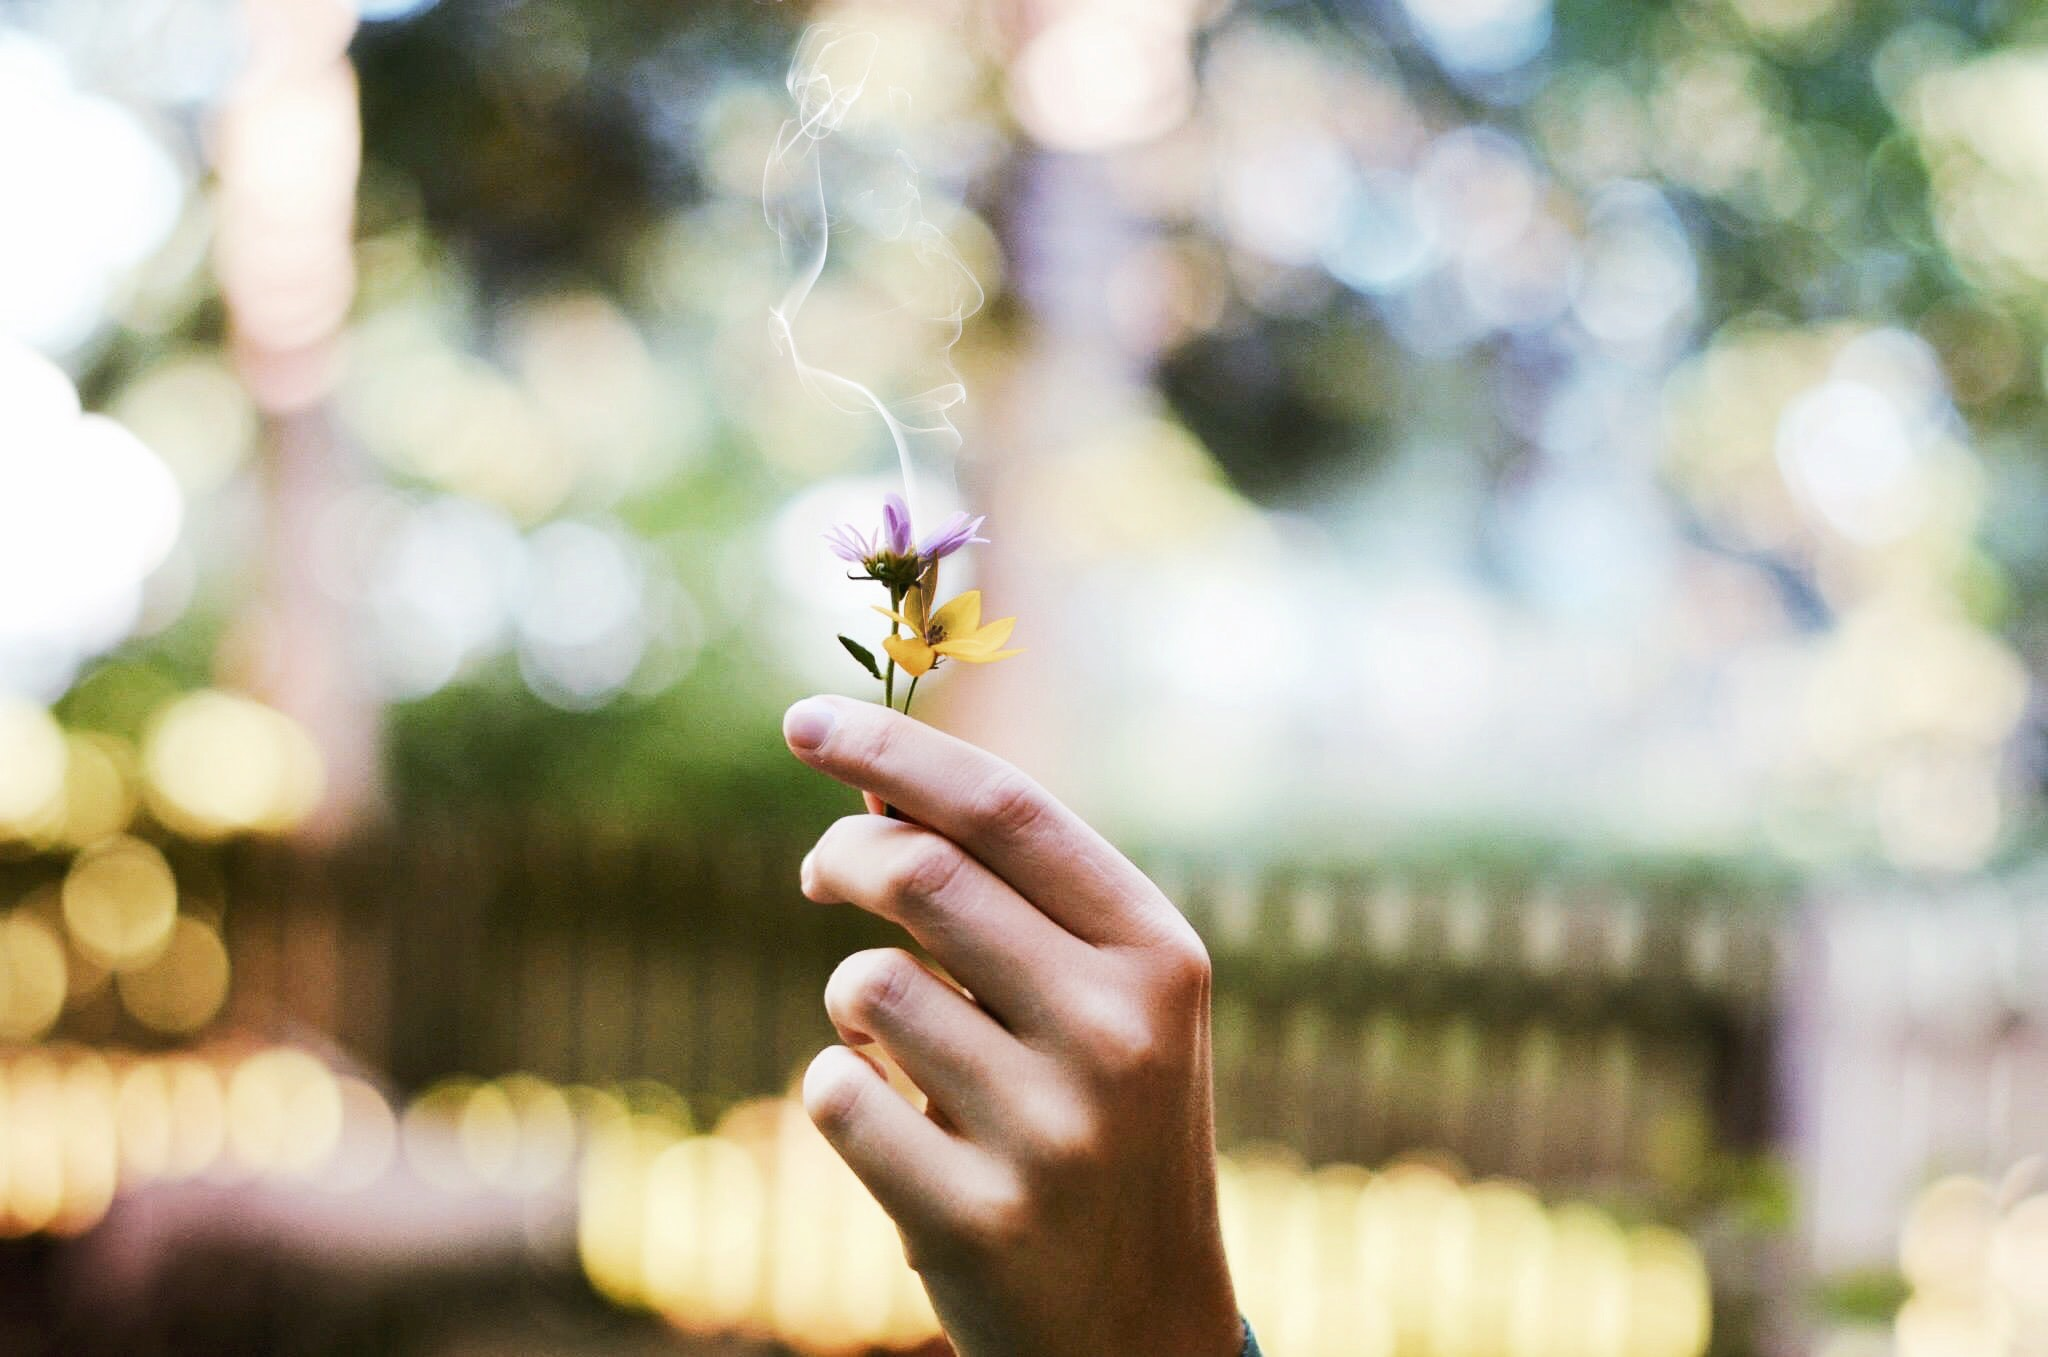 A person holding up two small flowers with smoke rising from their petals